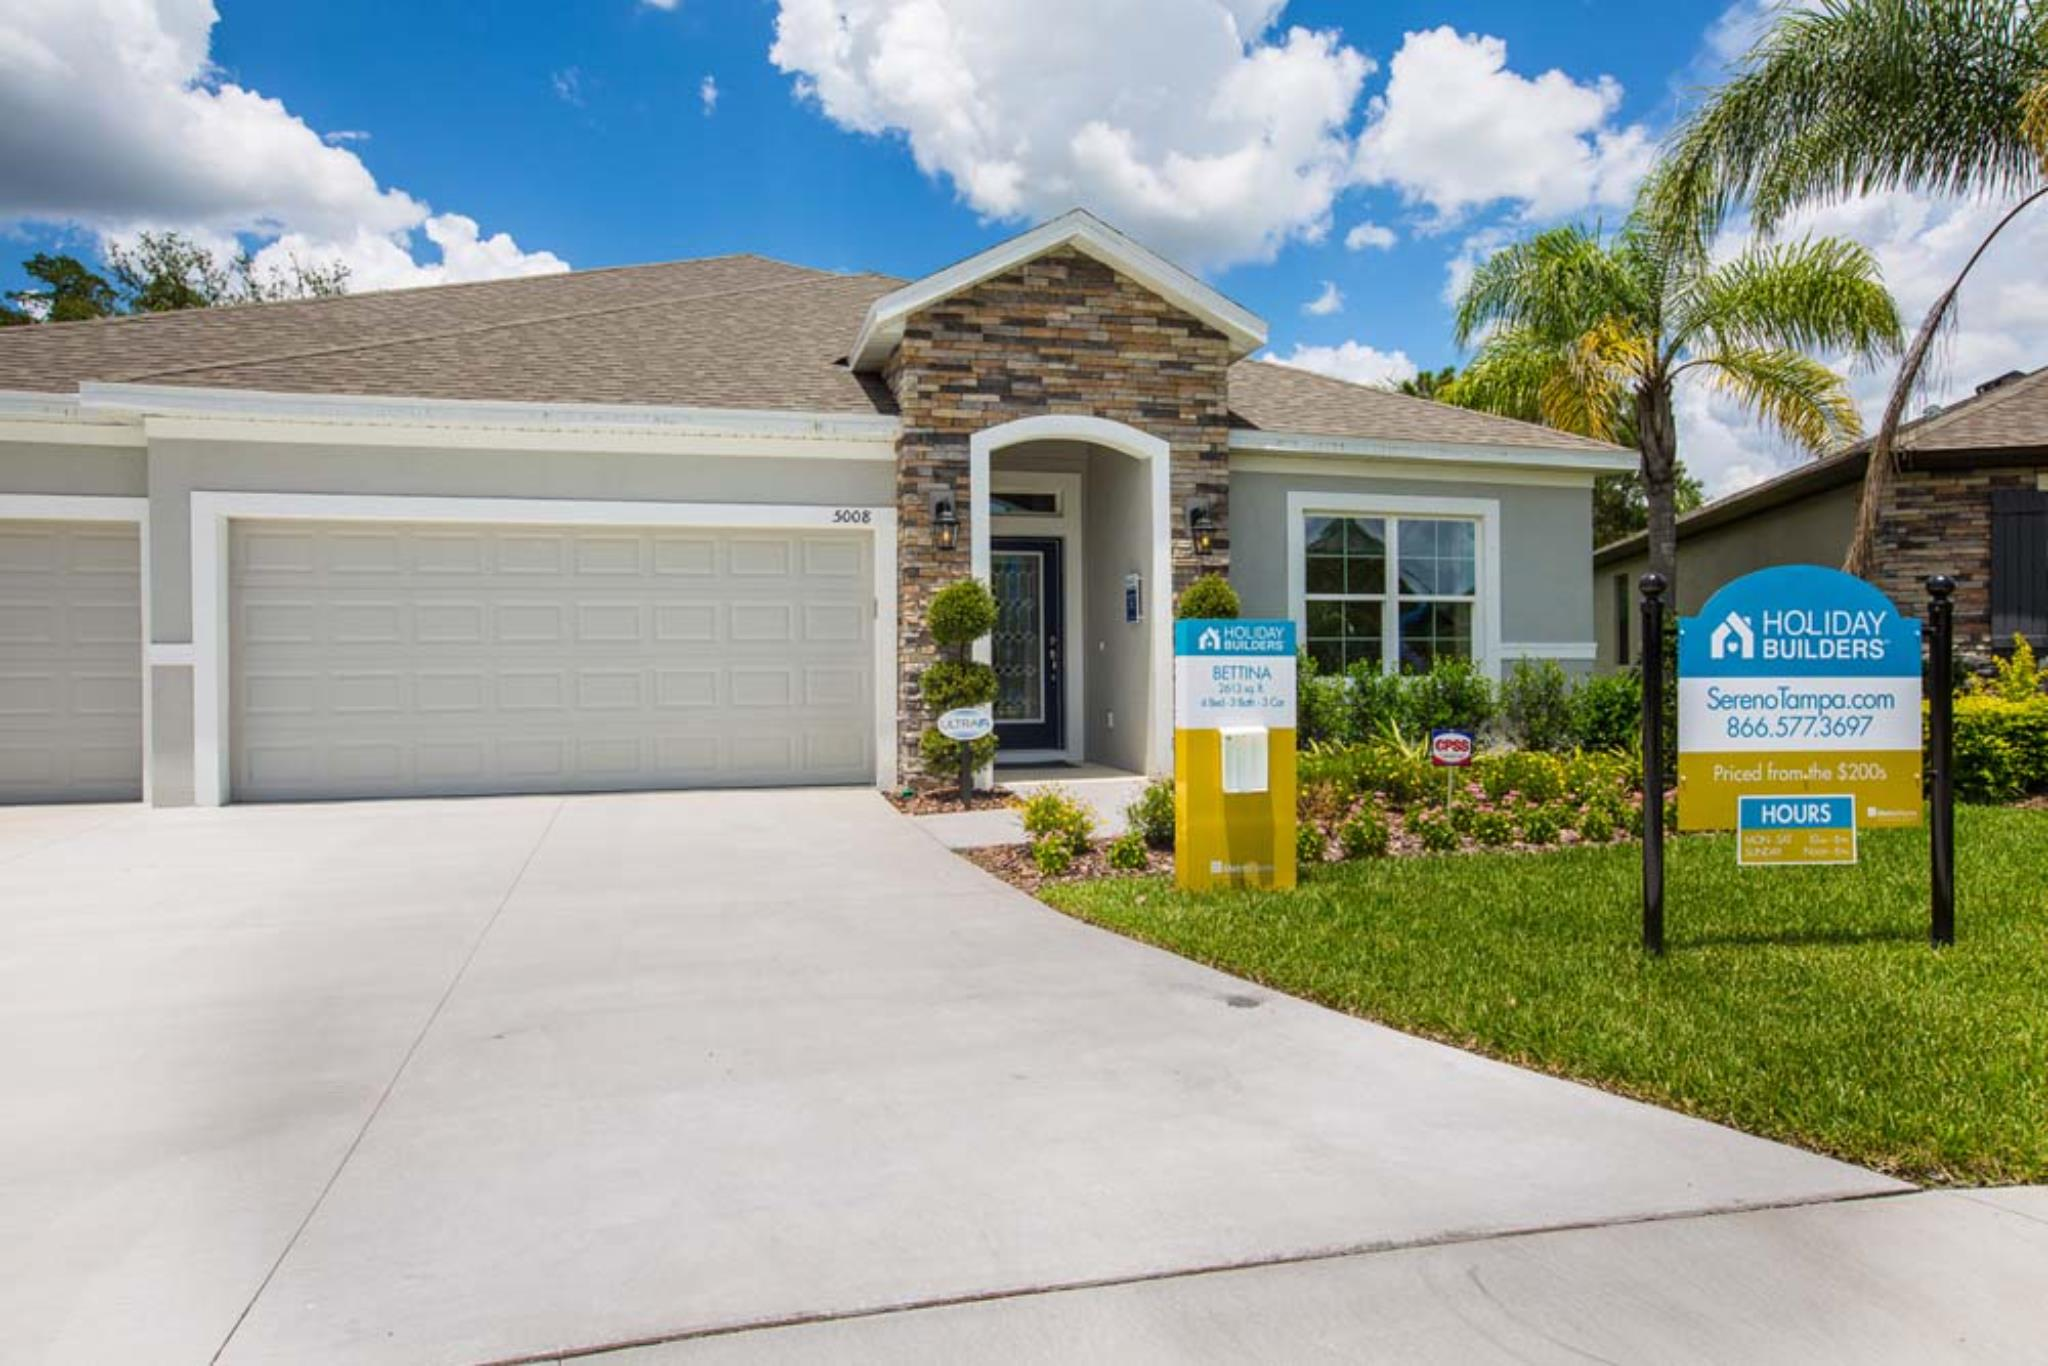 Garage Builders Tampa Sereno Wimauma New Homes Holiday Builders